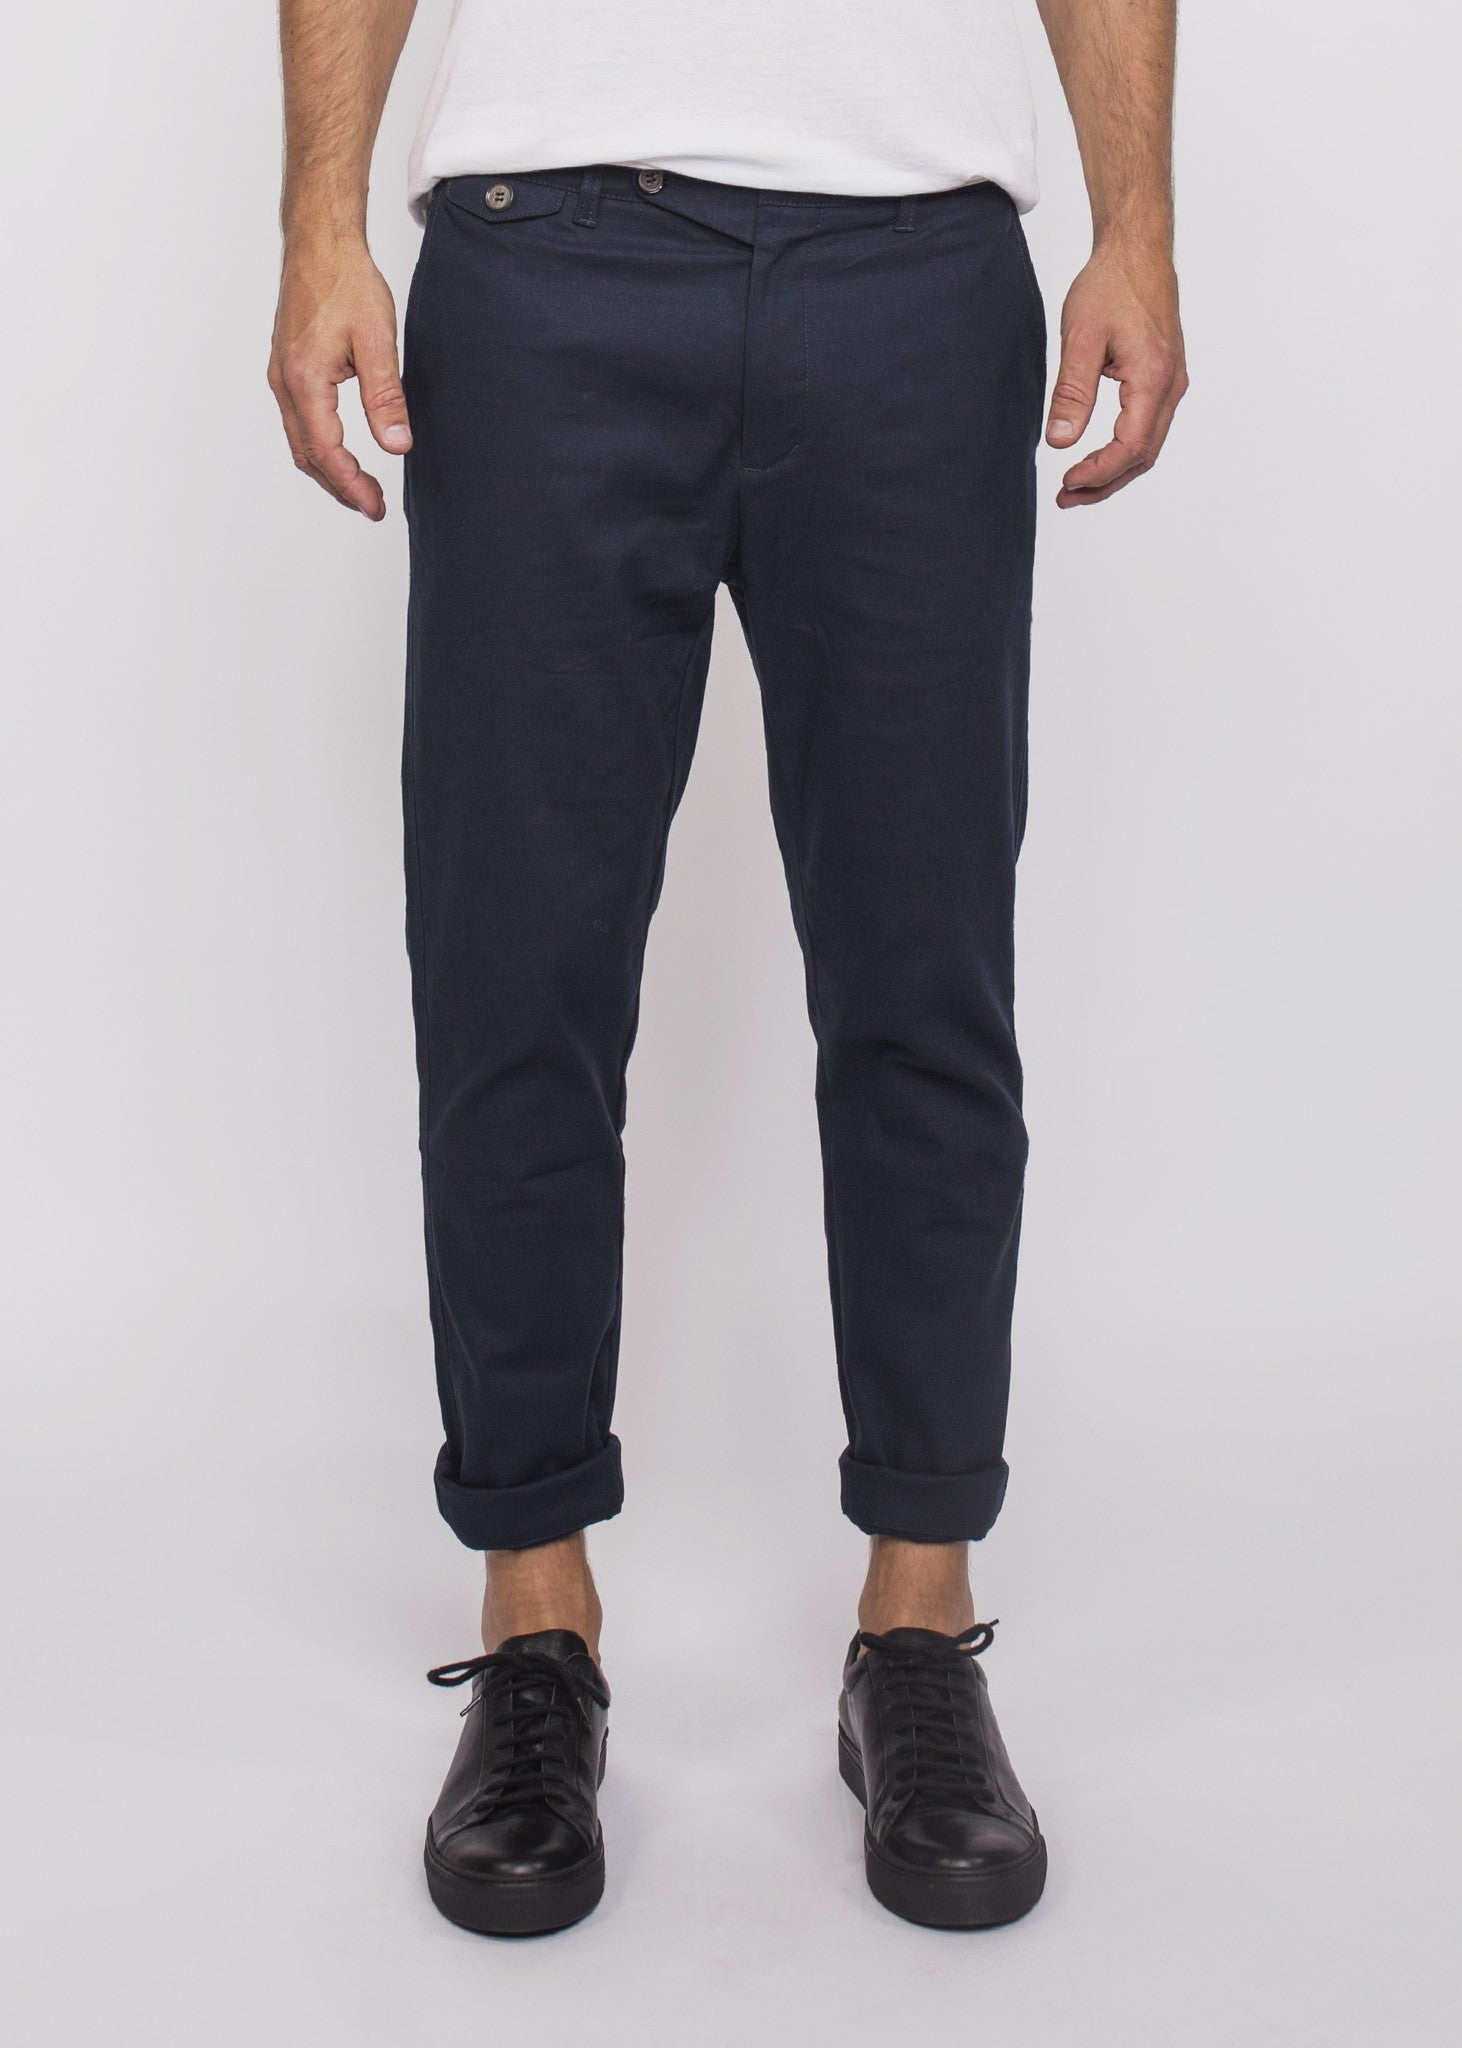 TWR Pants Navy